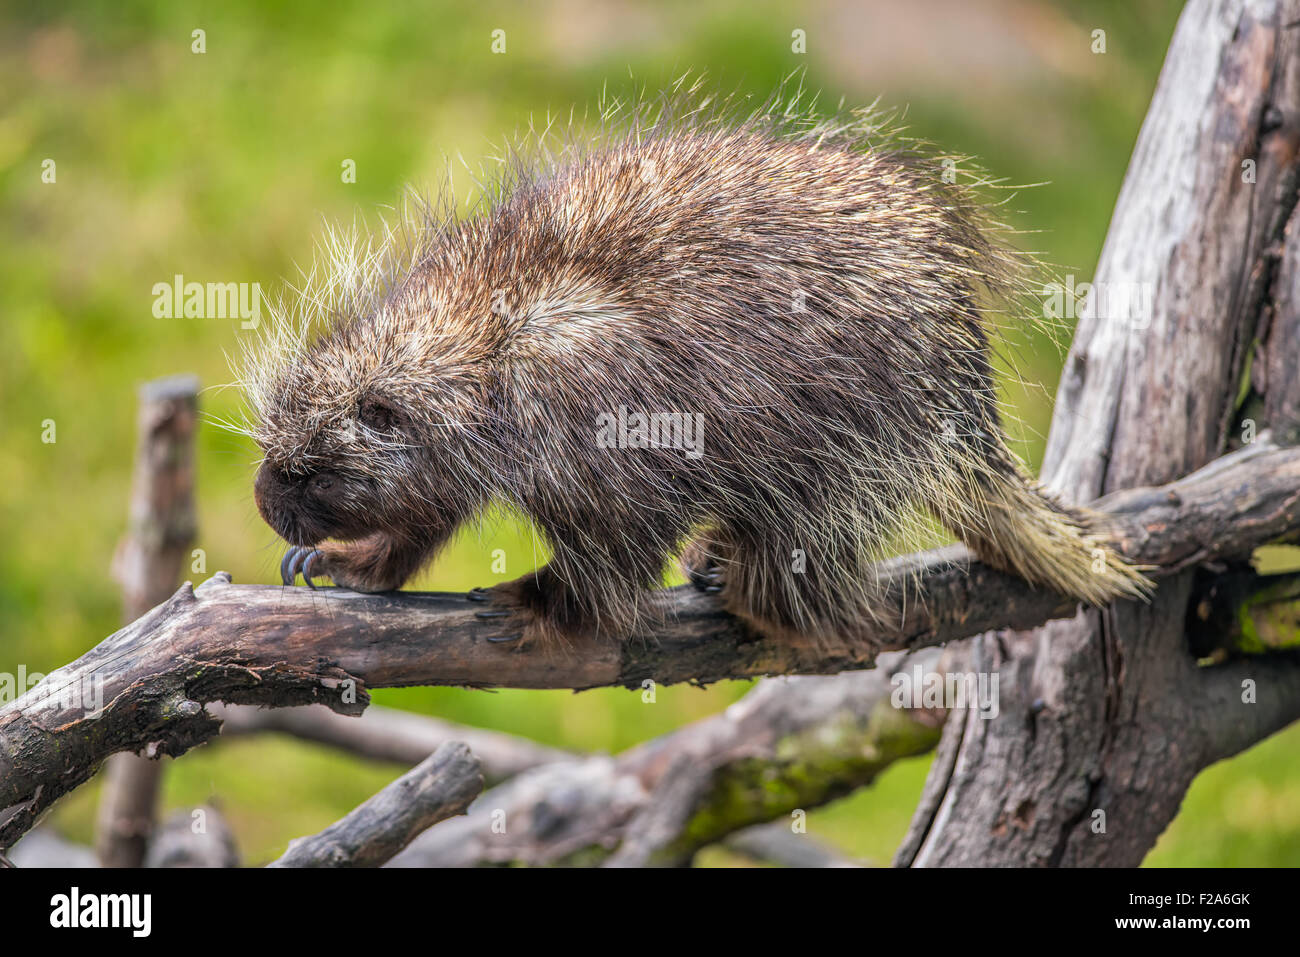 North American porcupine (Erethizon dorsatum) on a branch Stock Photo